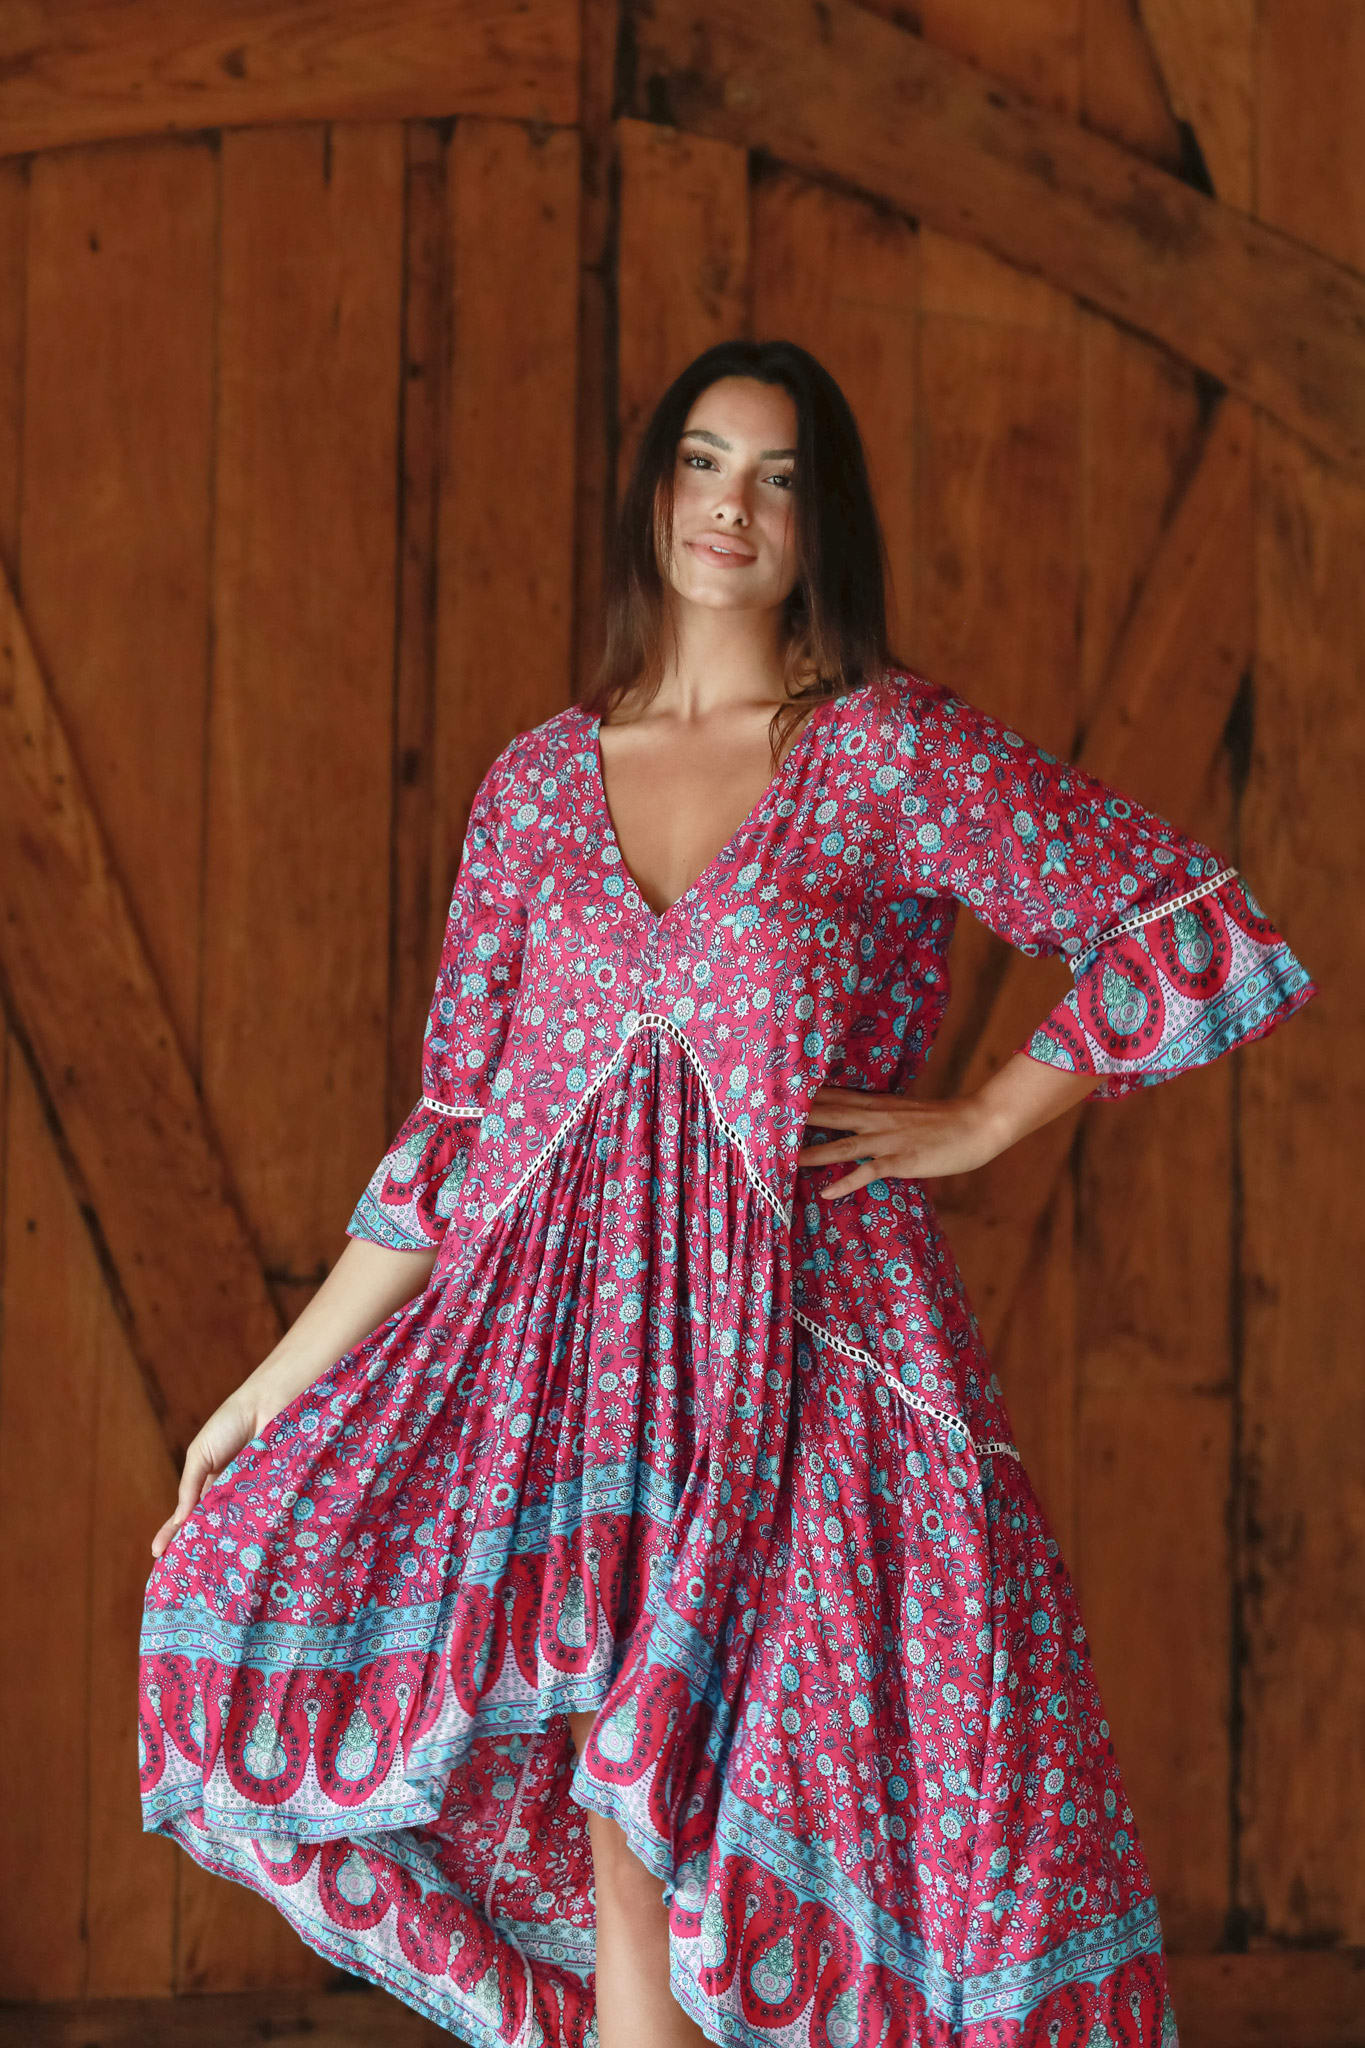 Paisley Bell Sleeve Babydoll - Pink-Teal - Front